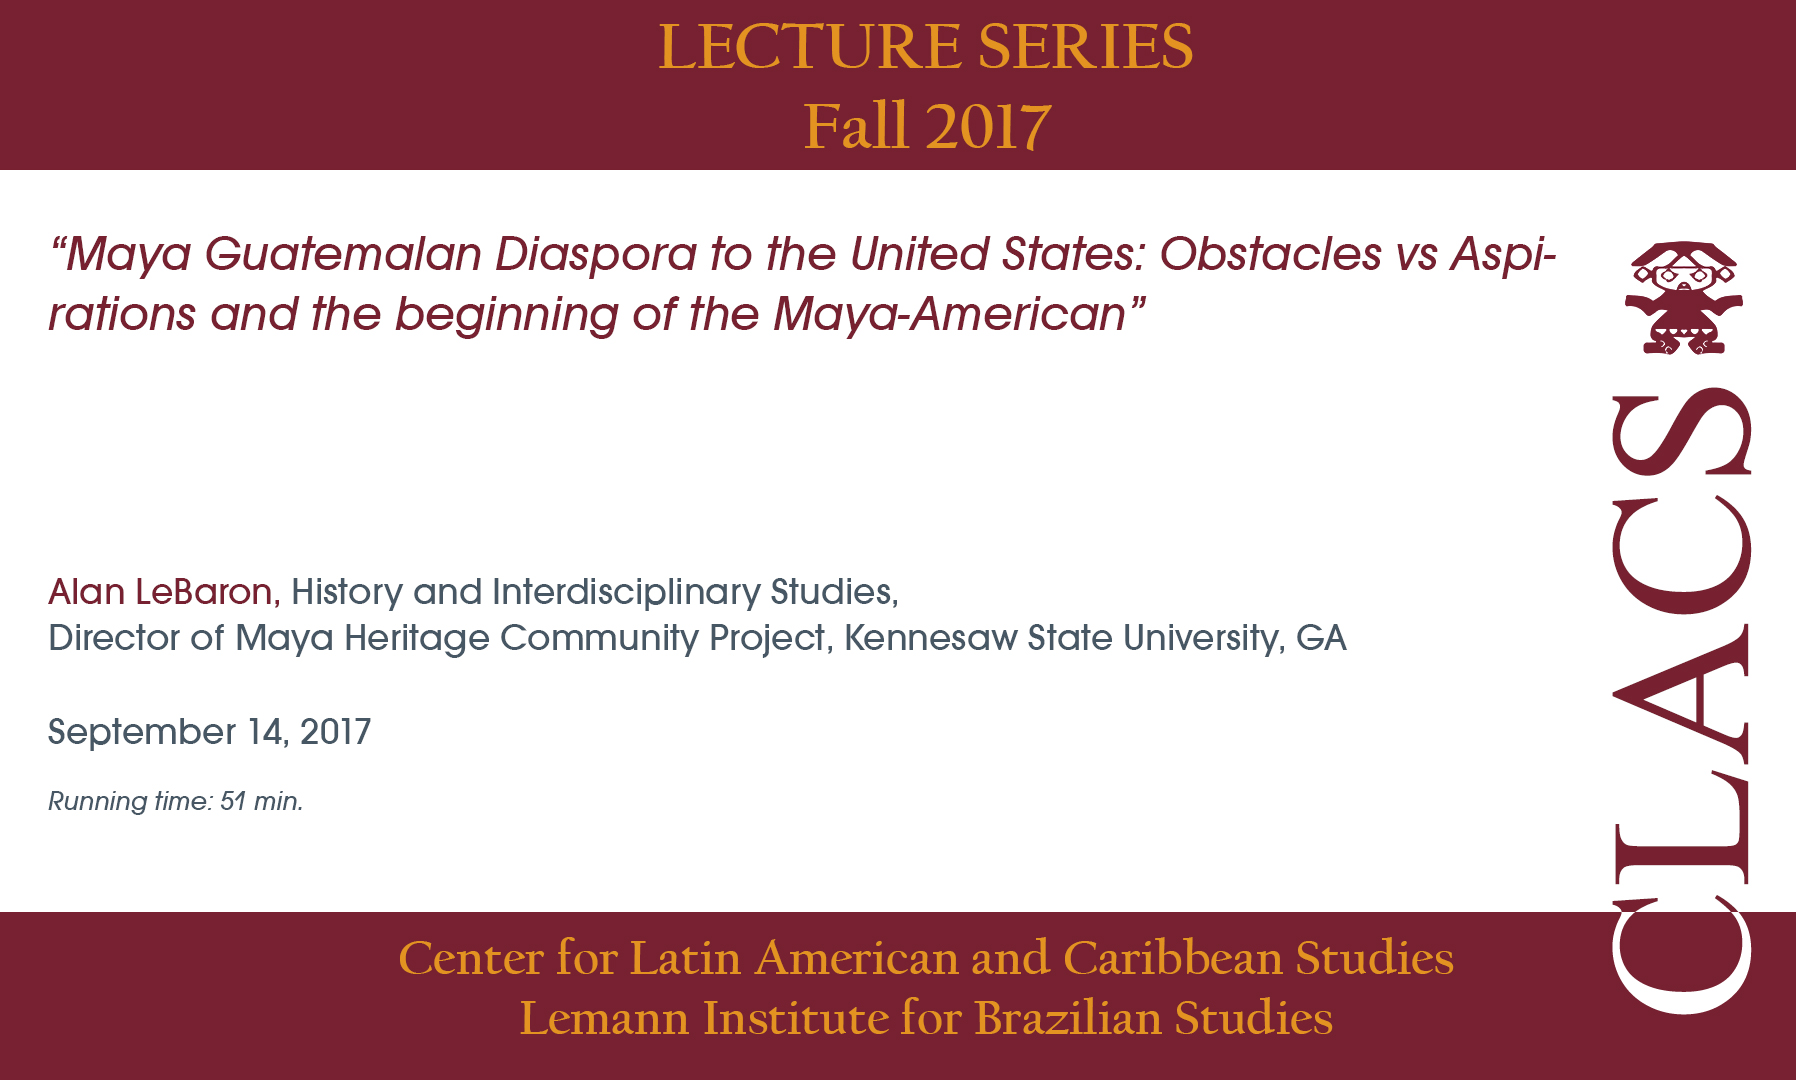 Maya Guatemalan Diaspora to the United States: Obstacles vs Aspirations and the beginning of the Maya-American